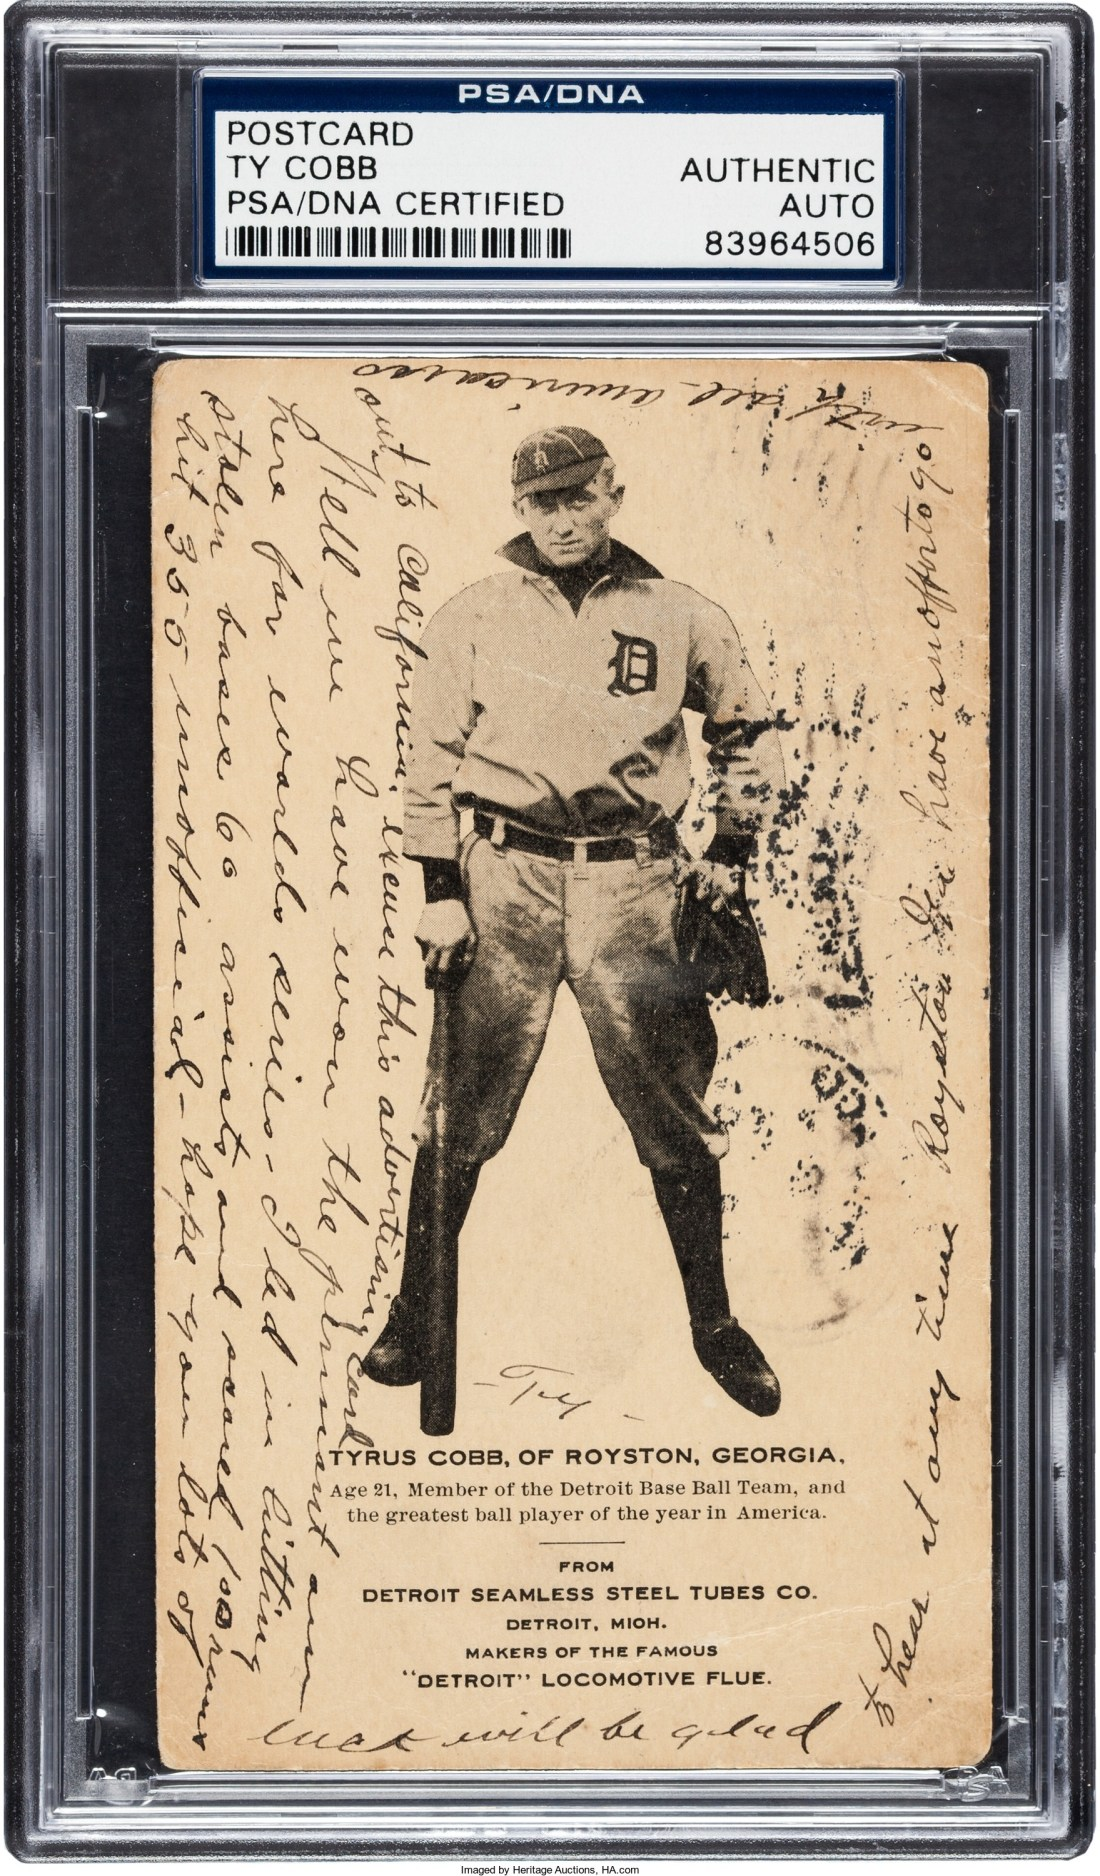 A 1907 Seamless Steel Tubes postcard picturing Ty Cobb in his rookie year. Cobb wrote a message on it and mailed it from Chicago on October 7, 1907, the day before he played in the World Series against the Cubs, who ultimately won in four games.